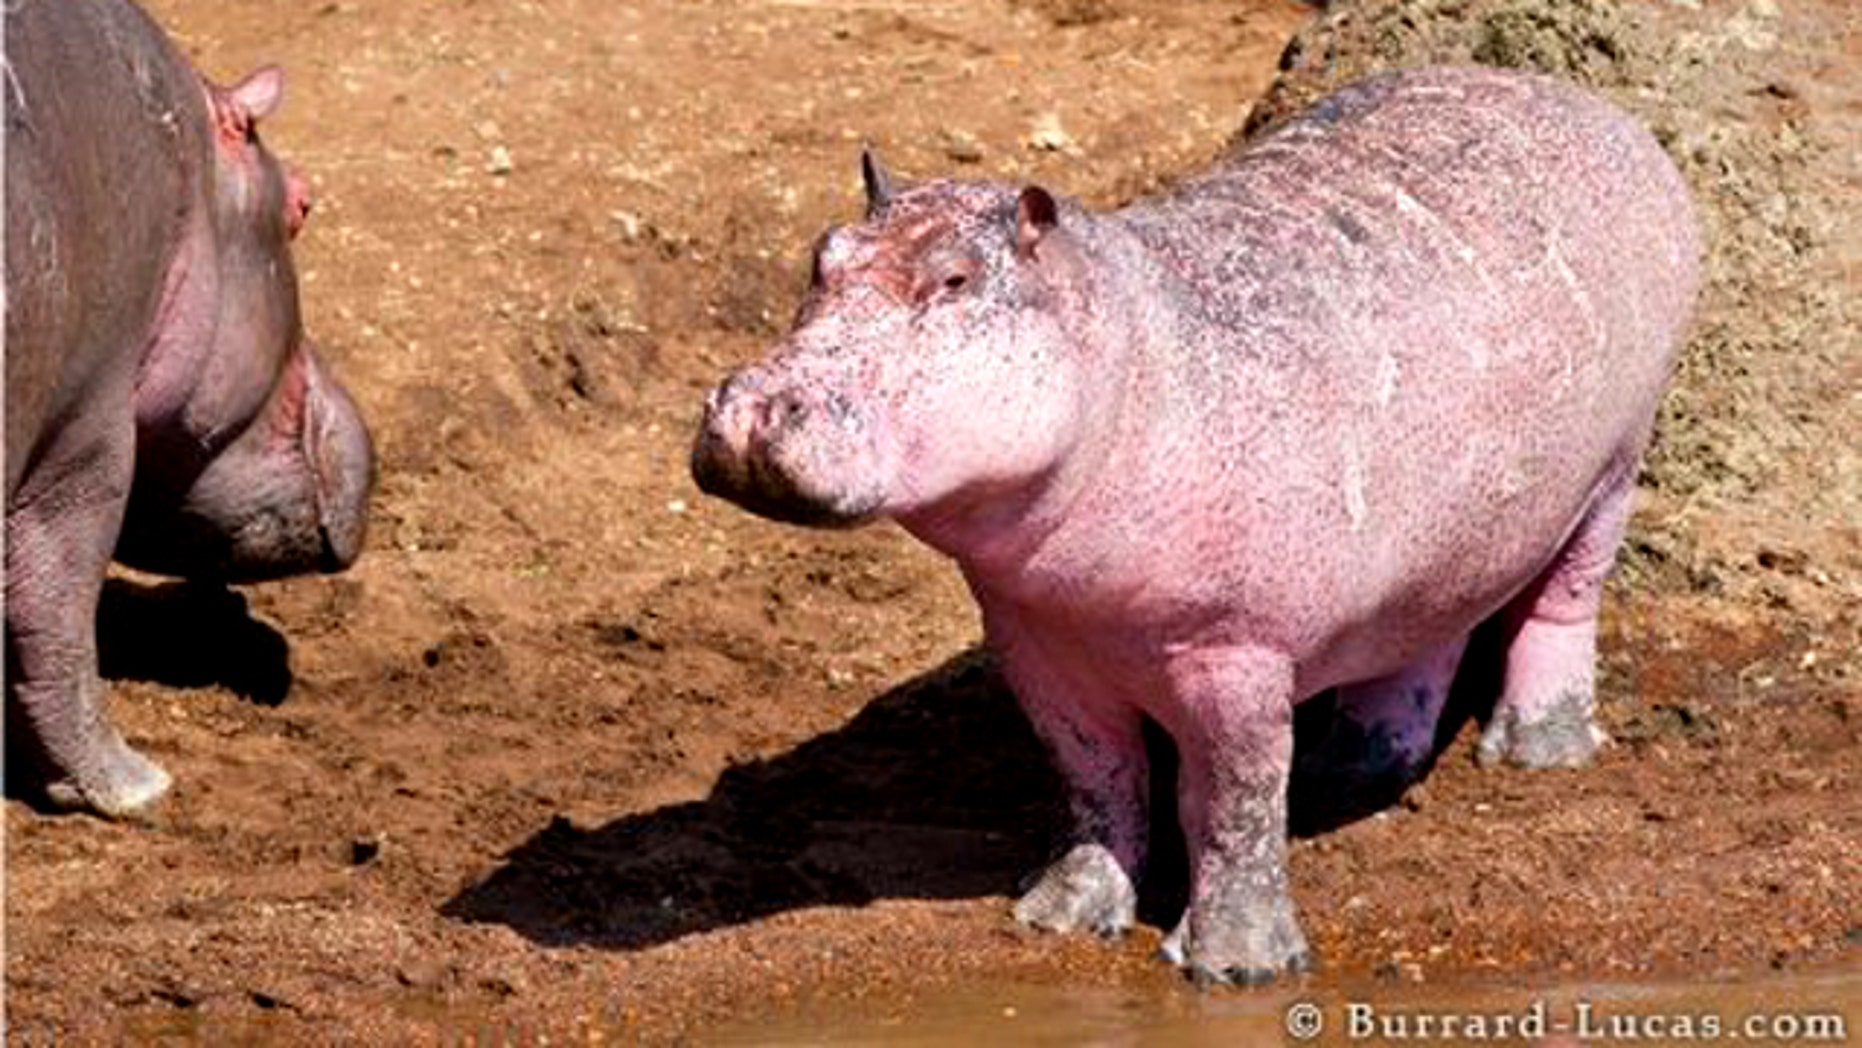 Wildlife photographers in Kenya were pleasantly surprised to stumble across this rare site: a pink hippo.